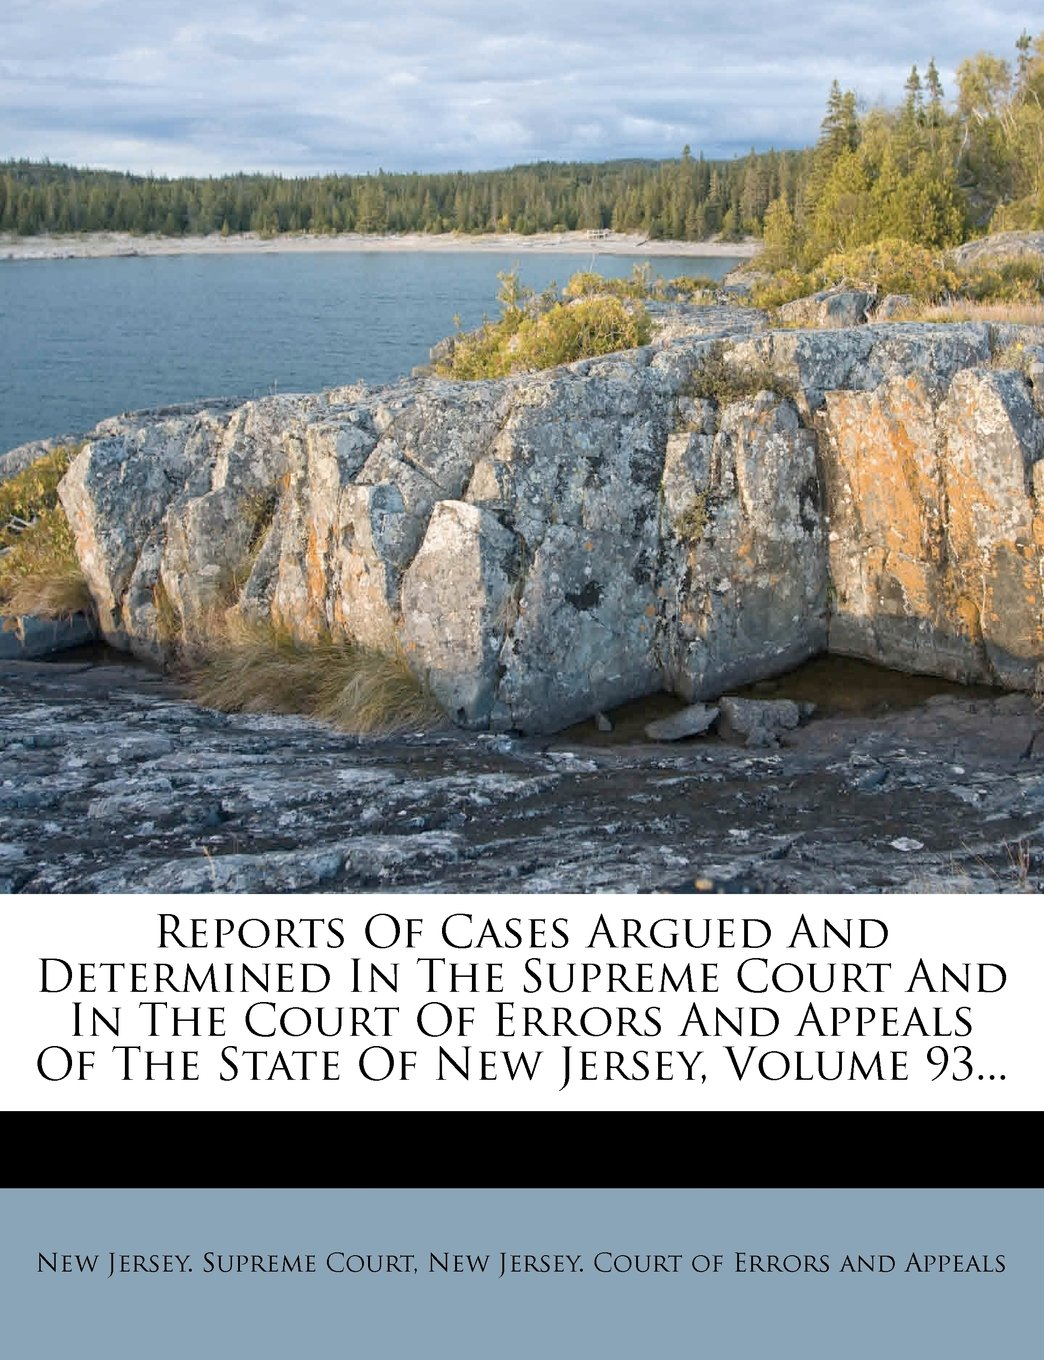 Download Reports Of Cases Argued And Determined In The Supreme Court And In The Court Of Errors And Appeals Of The State Of New Jersey, Volume 93... ebook